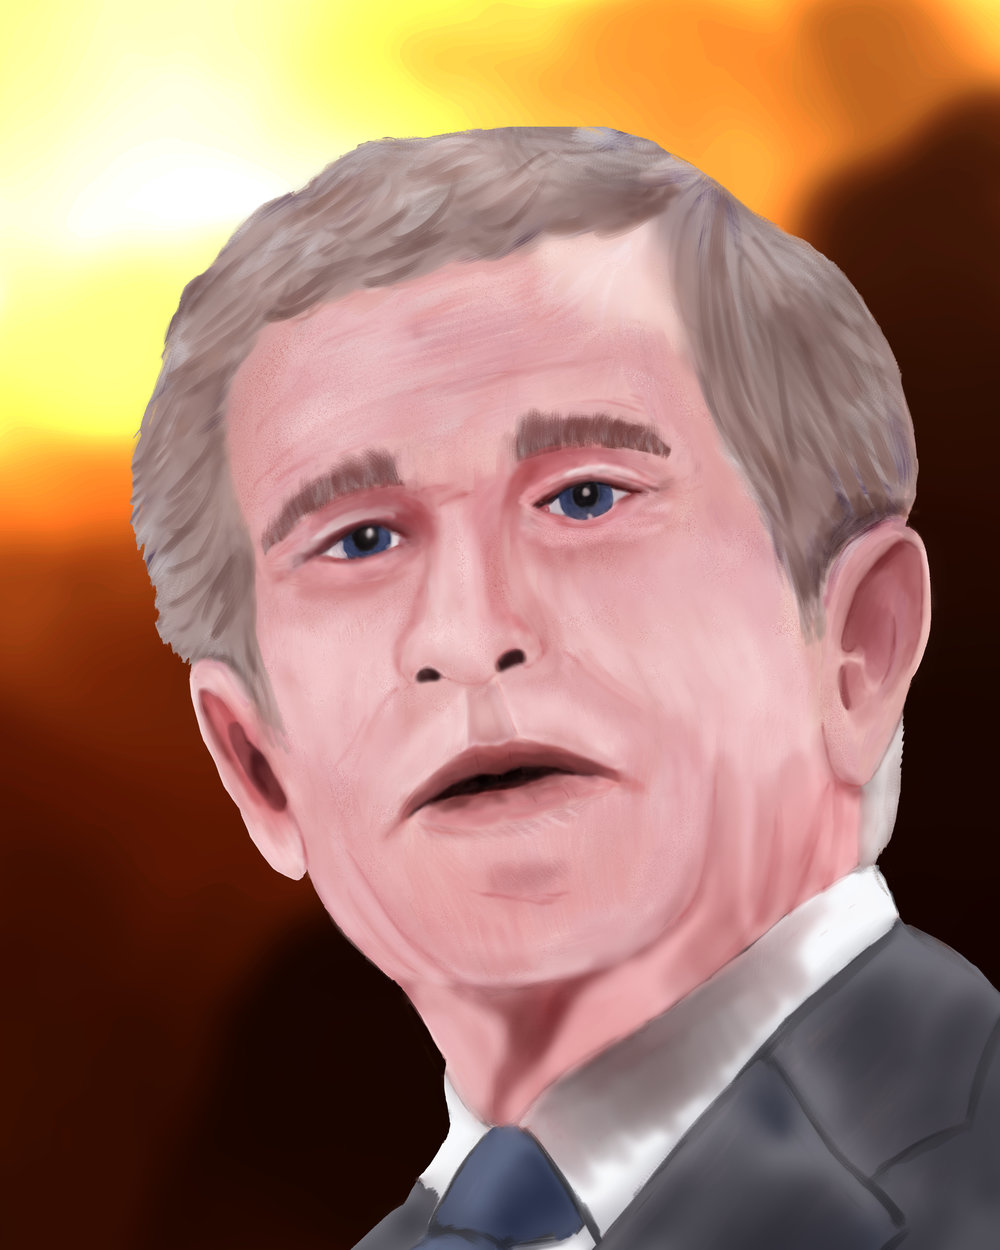 George W. Bush paints portraits of veterans and now some veterans paint portraits of George W. Bush.